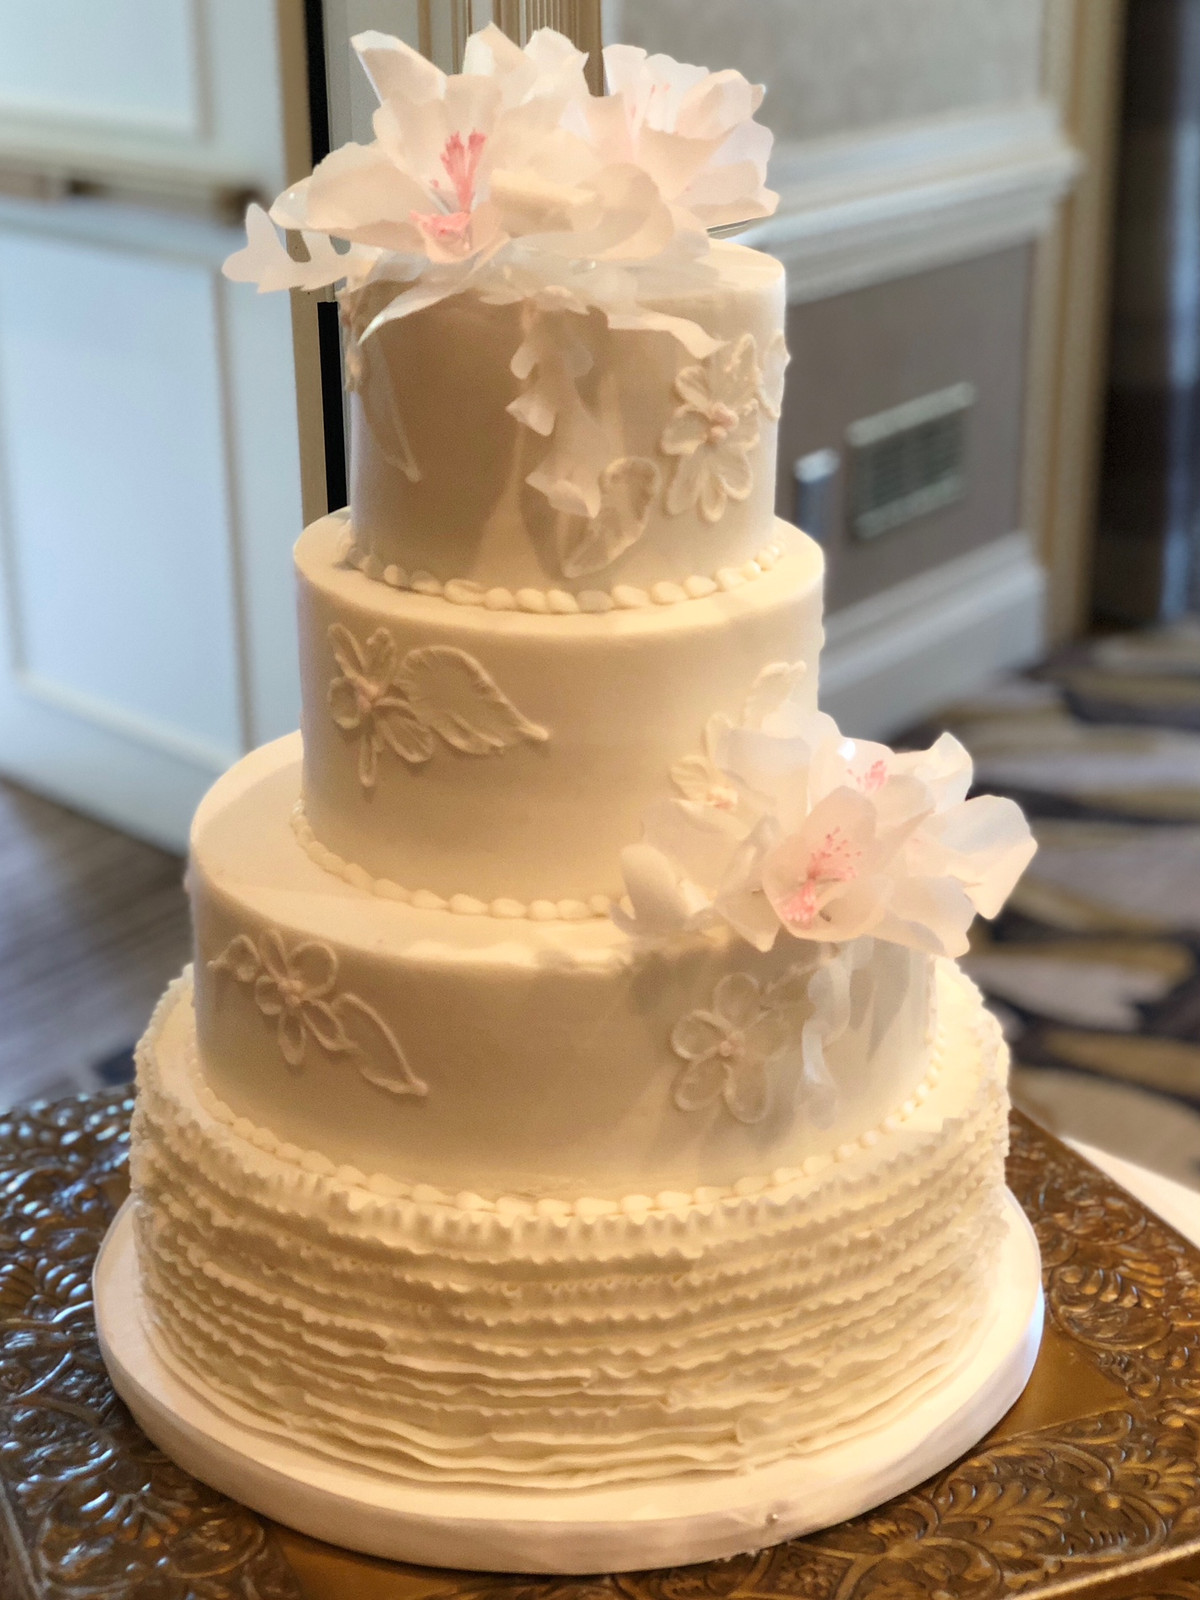 Custom Cakes | Wedding Cakes | Atlanta | Wedding Gallery